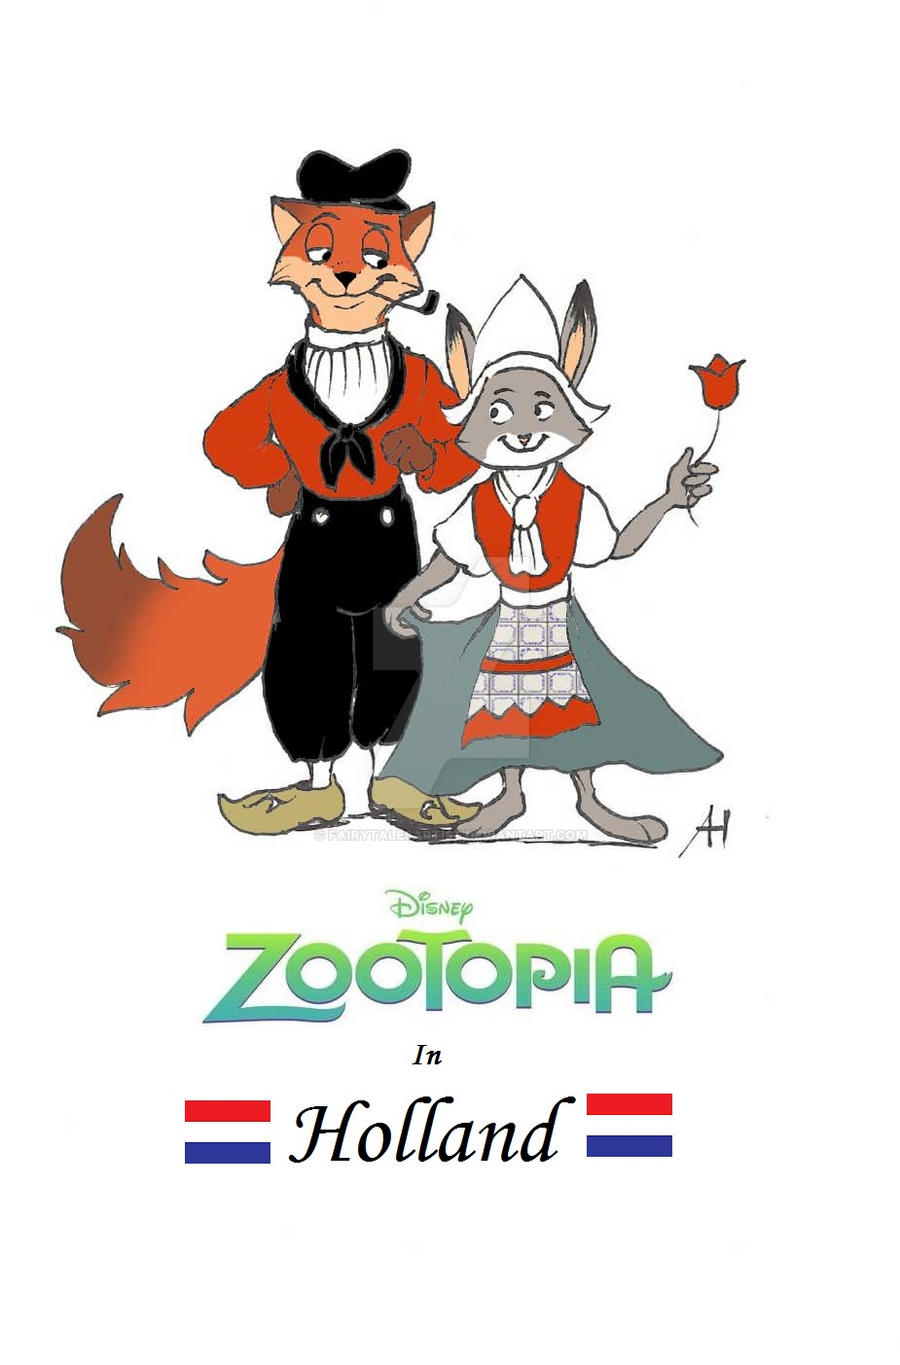 Zootopia in Holland by FairytalesArtist